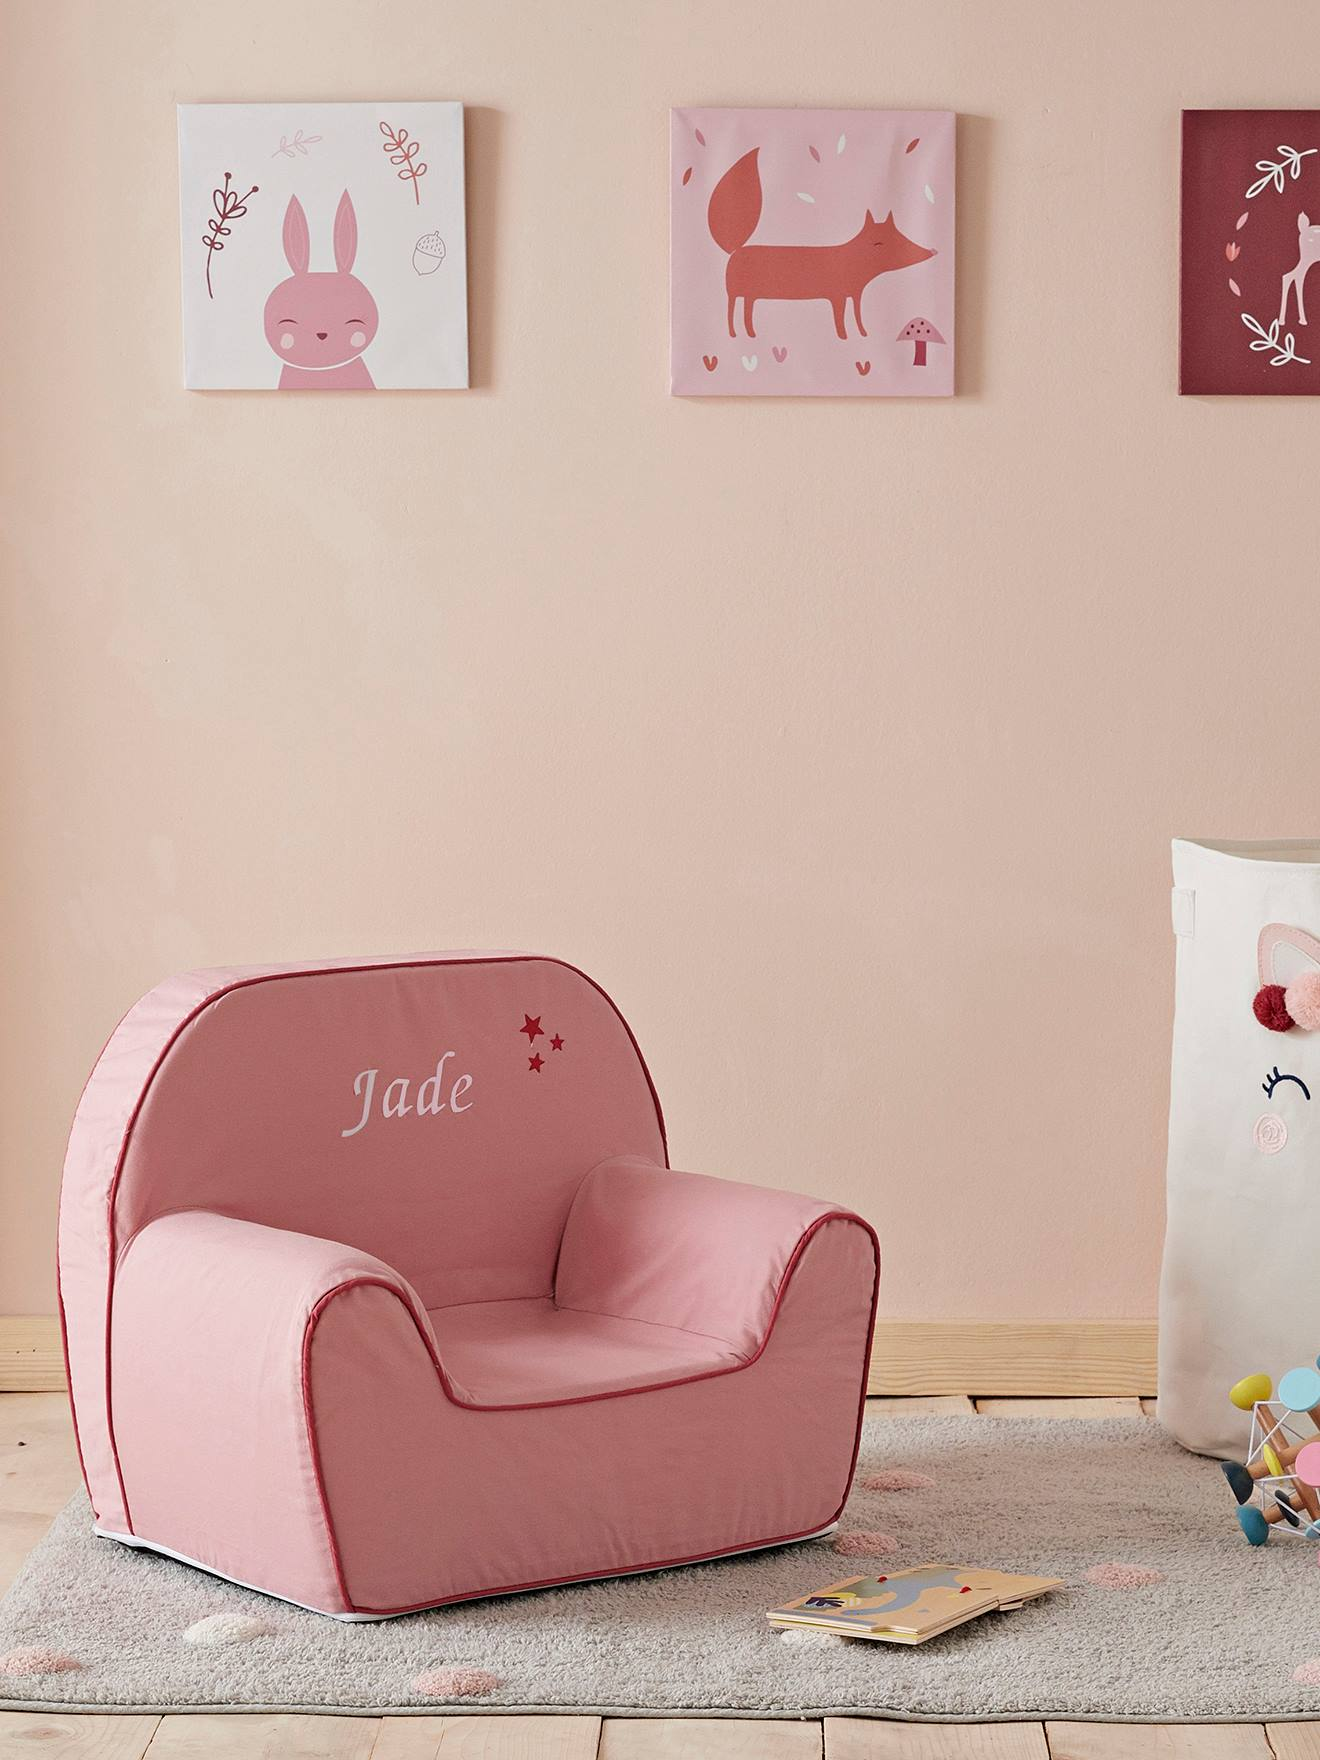 Foam Armchair for Babies pink light solid, Bedroom Furniture & Storage | Vertbaudet